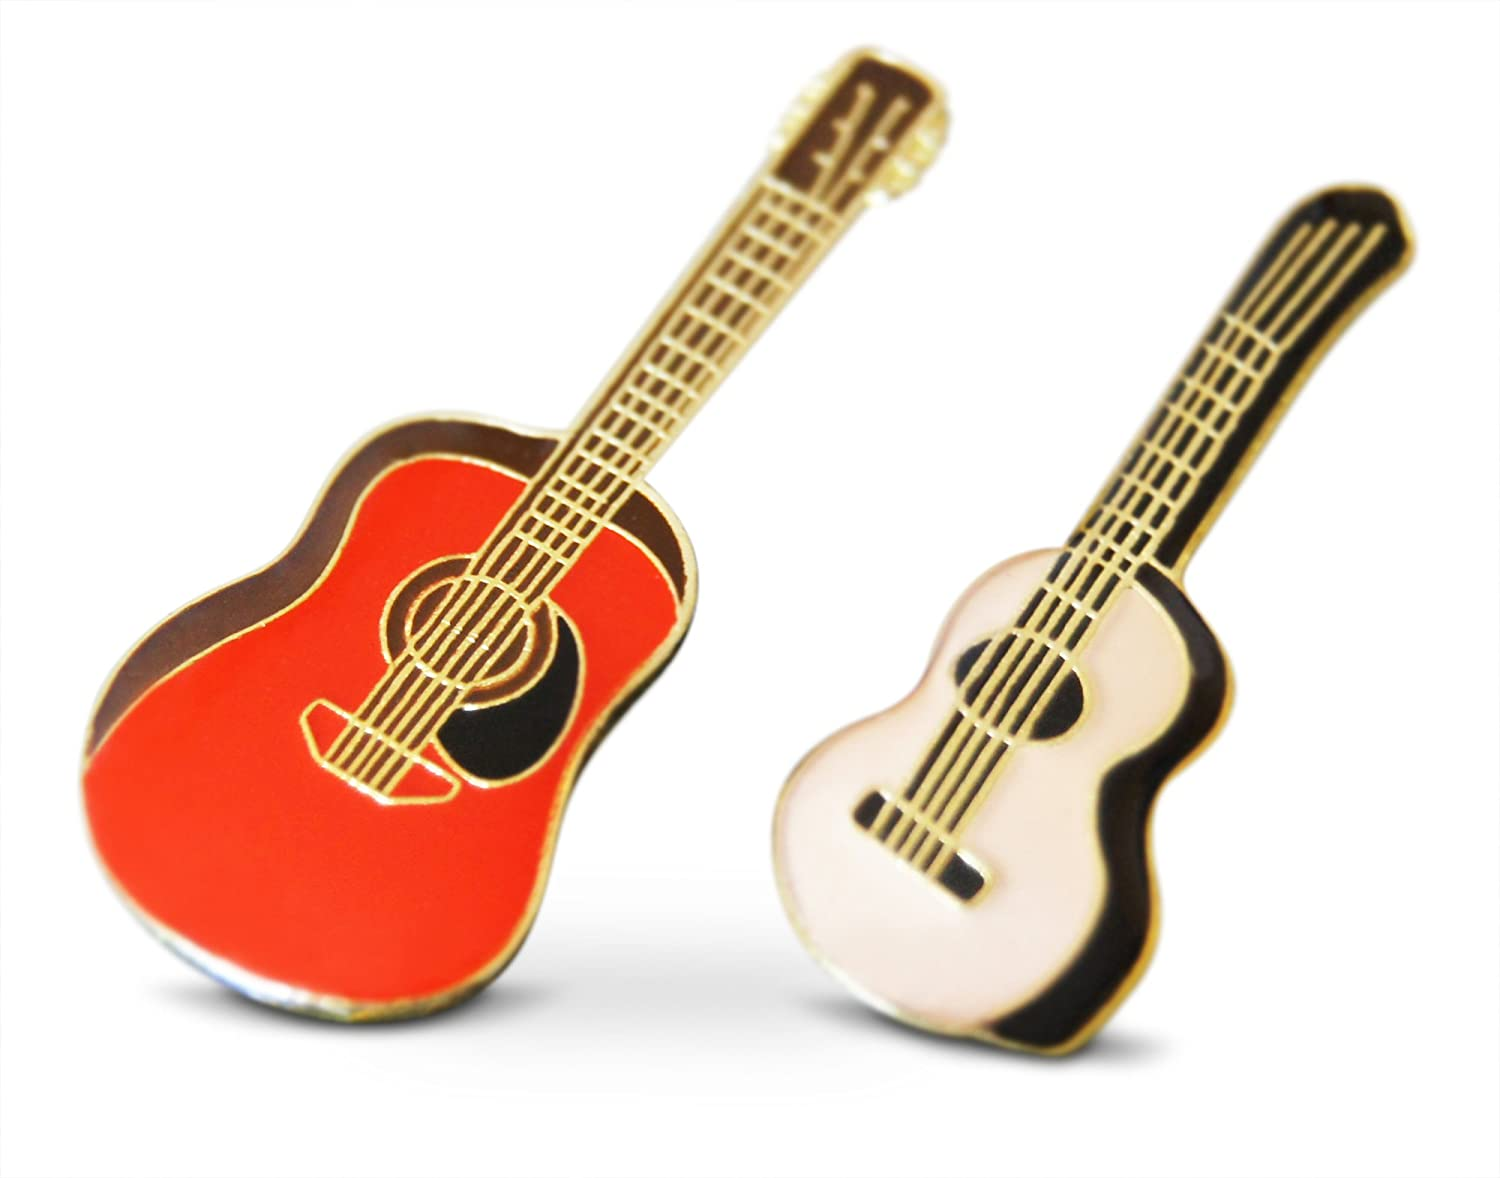 Novel Merk 2-Piece Acoustic Strong Guitar Musician Lapel or Hat Pin & Tie Tack Set with Clutch Back